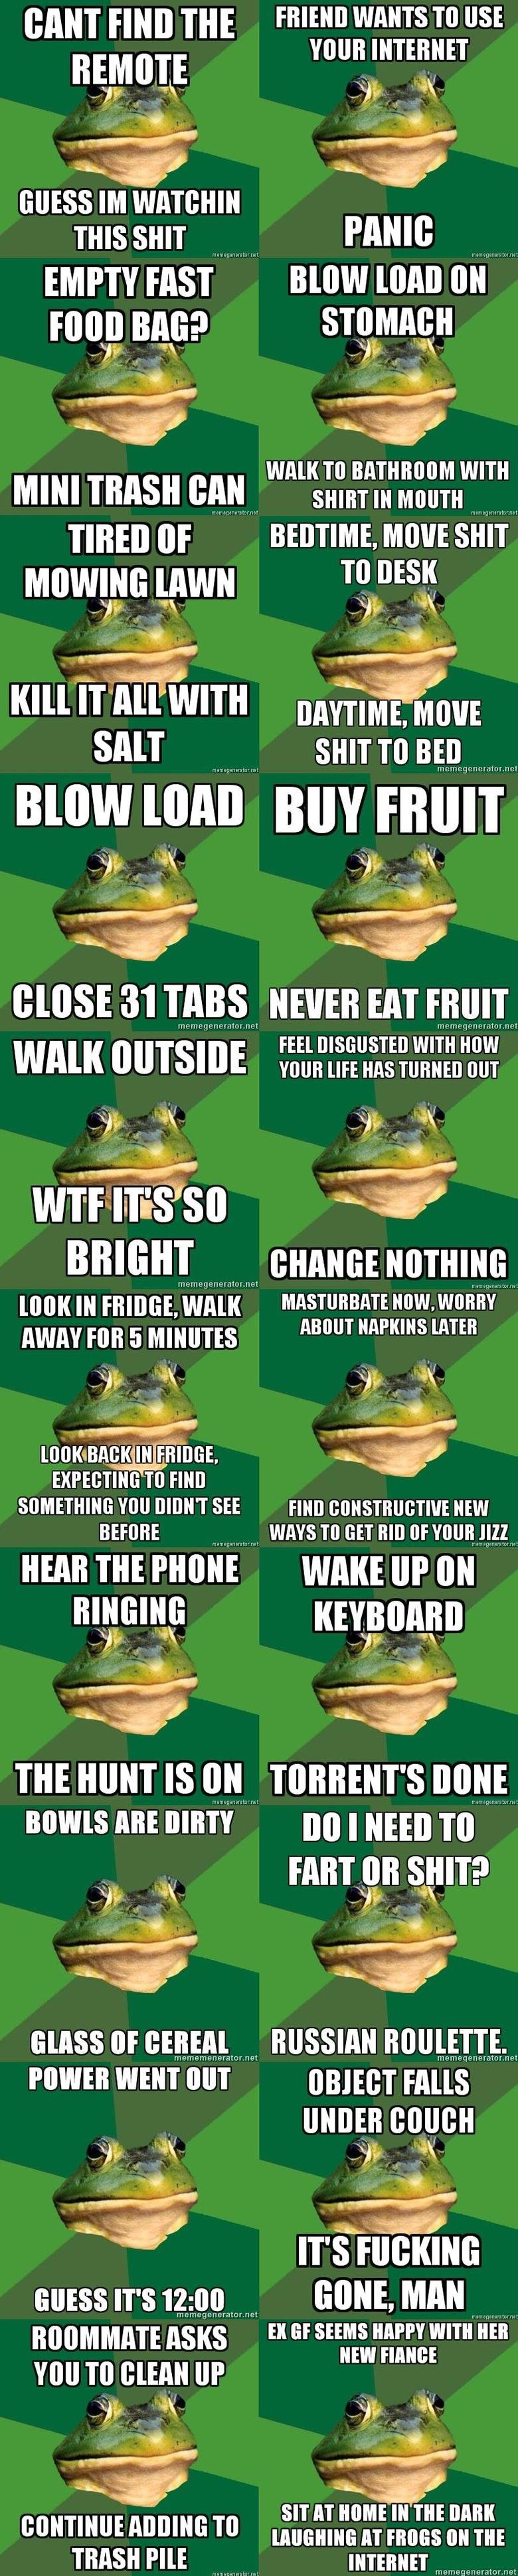 """Resurrect Foul bachelor frog. Haven't seen this guy in a looooooong time~. Flclol Tile WANTS TO USE nus sun A 'rartiy PAM: EMPTY msi"""" slow new iii"""""""""""" THAI} BAIT"""